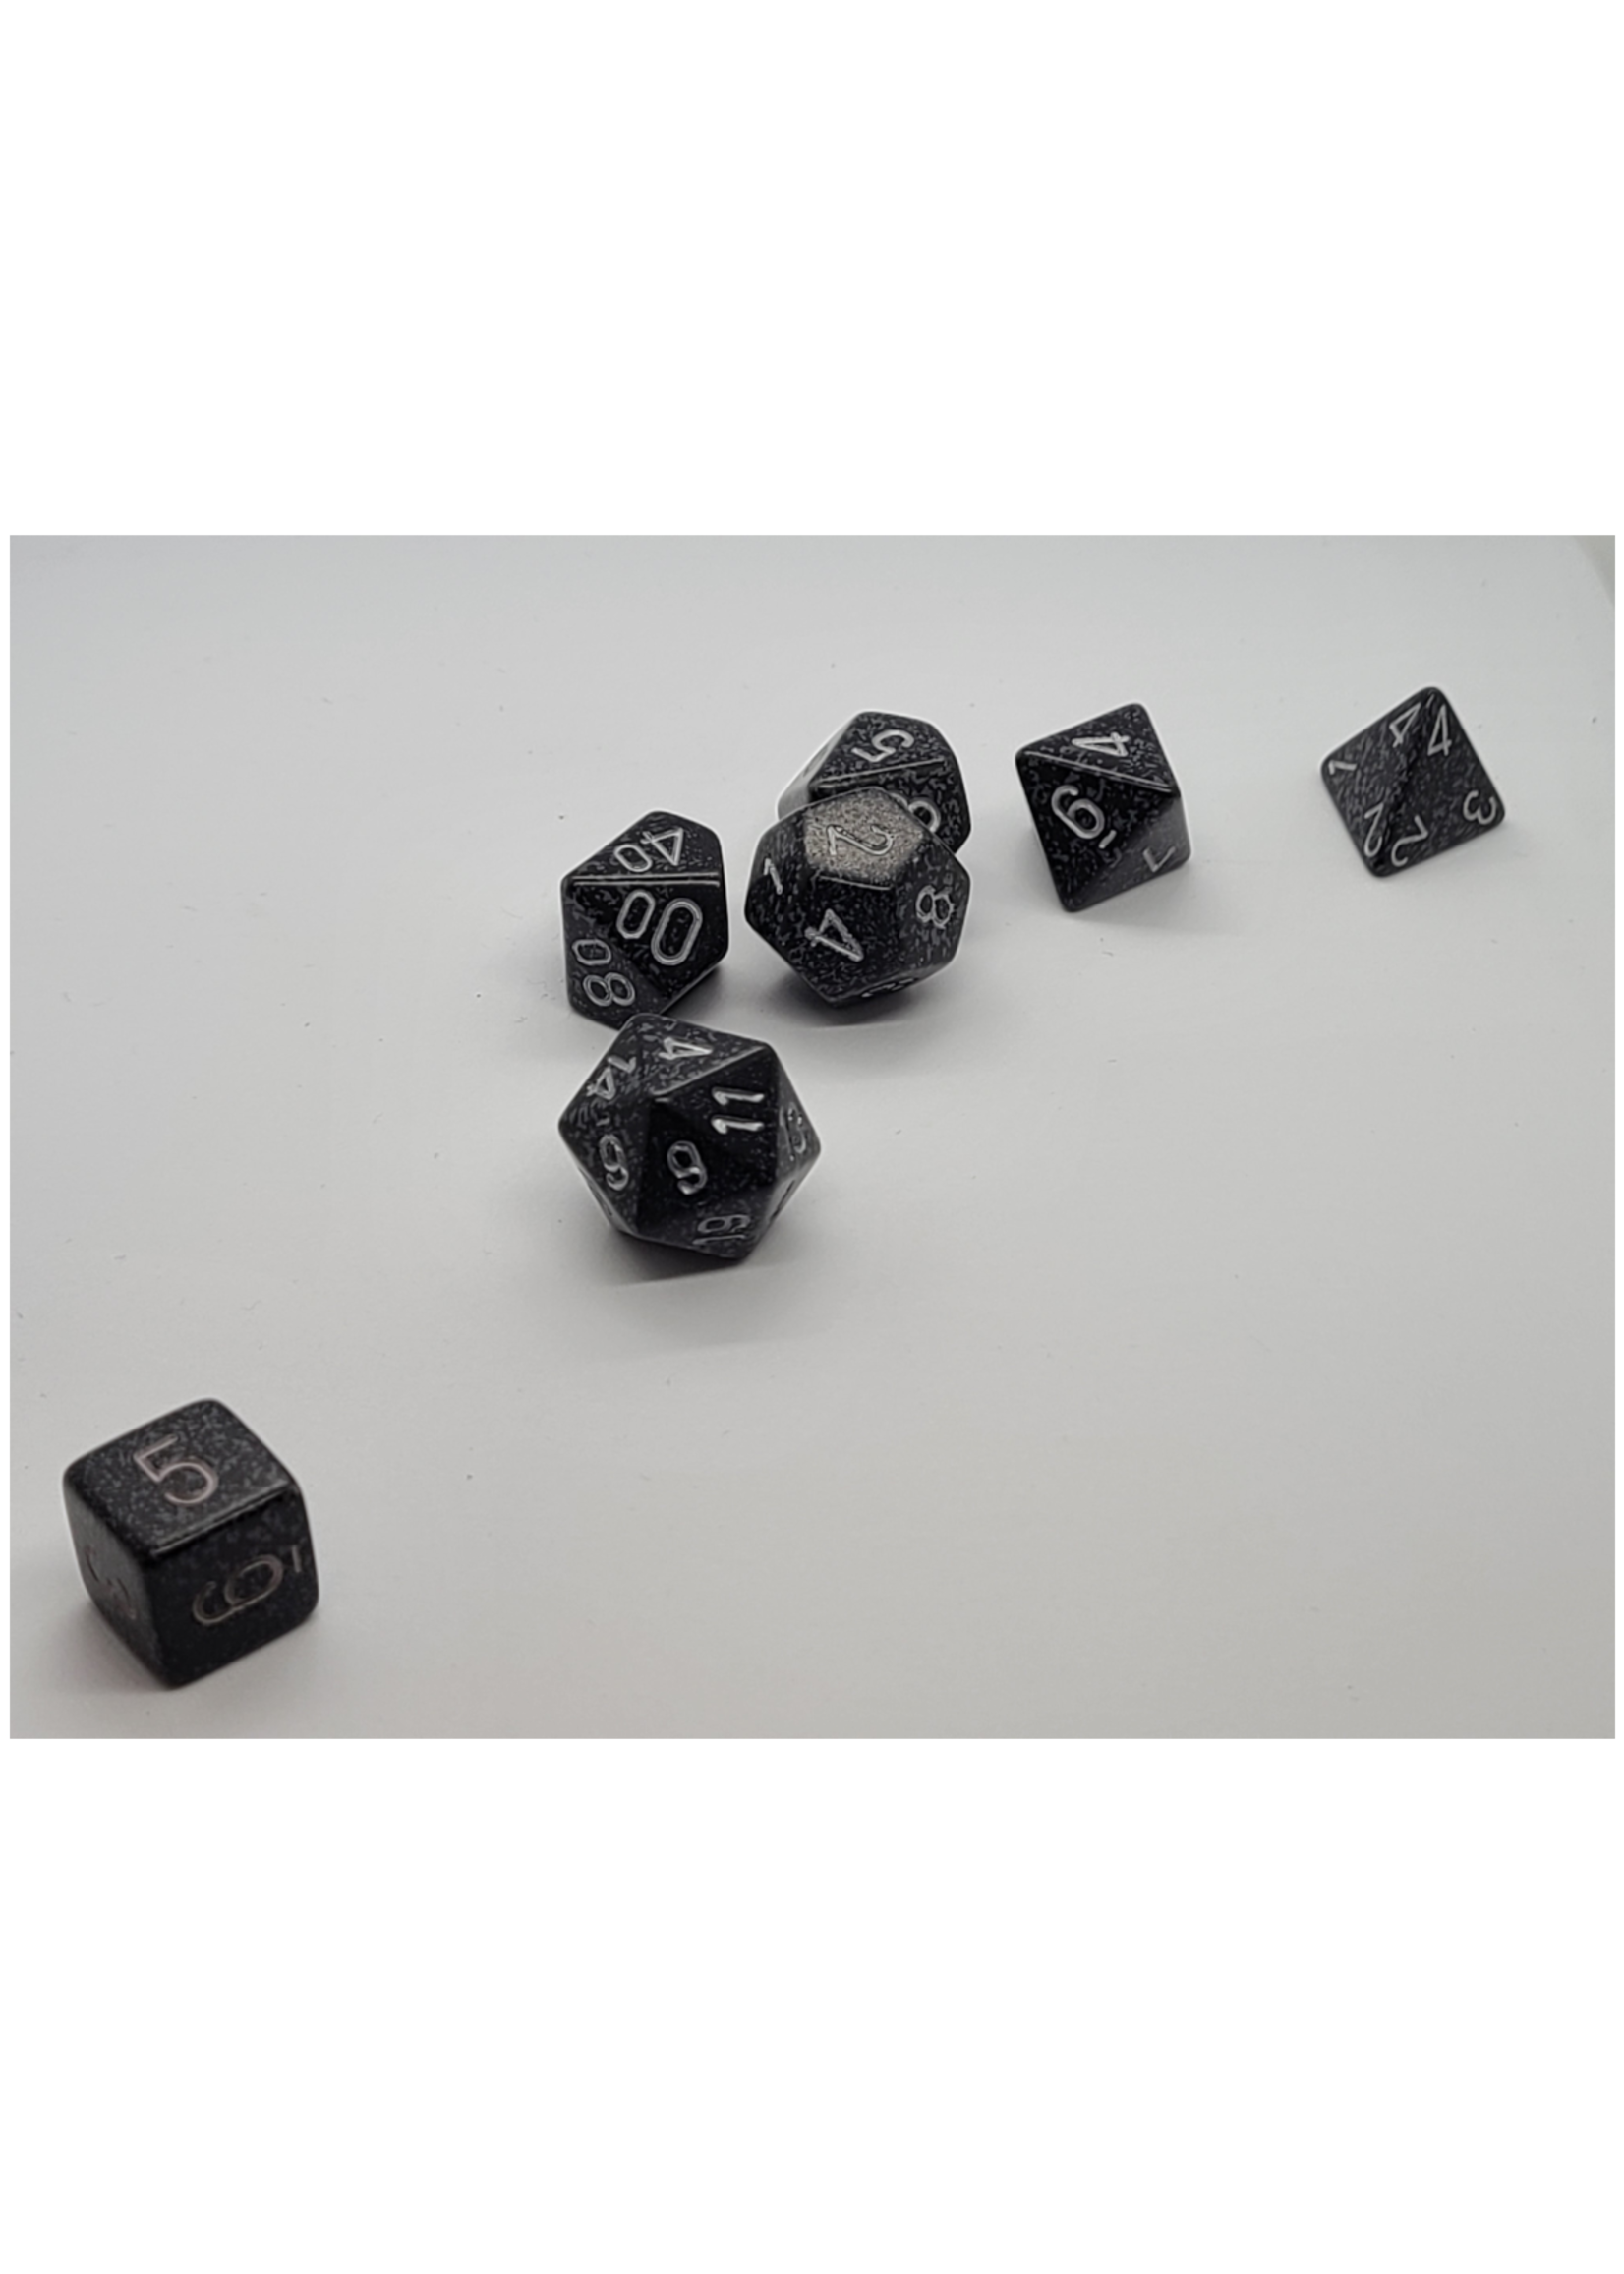 Chessex Chessex Dice - 7 Polyhedral